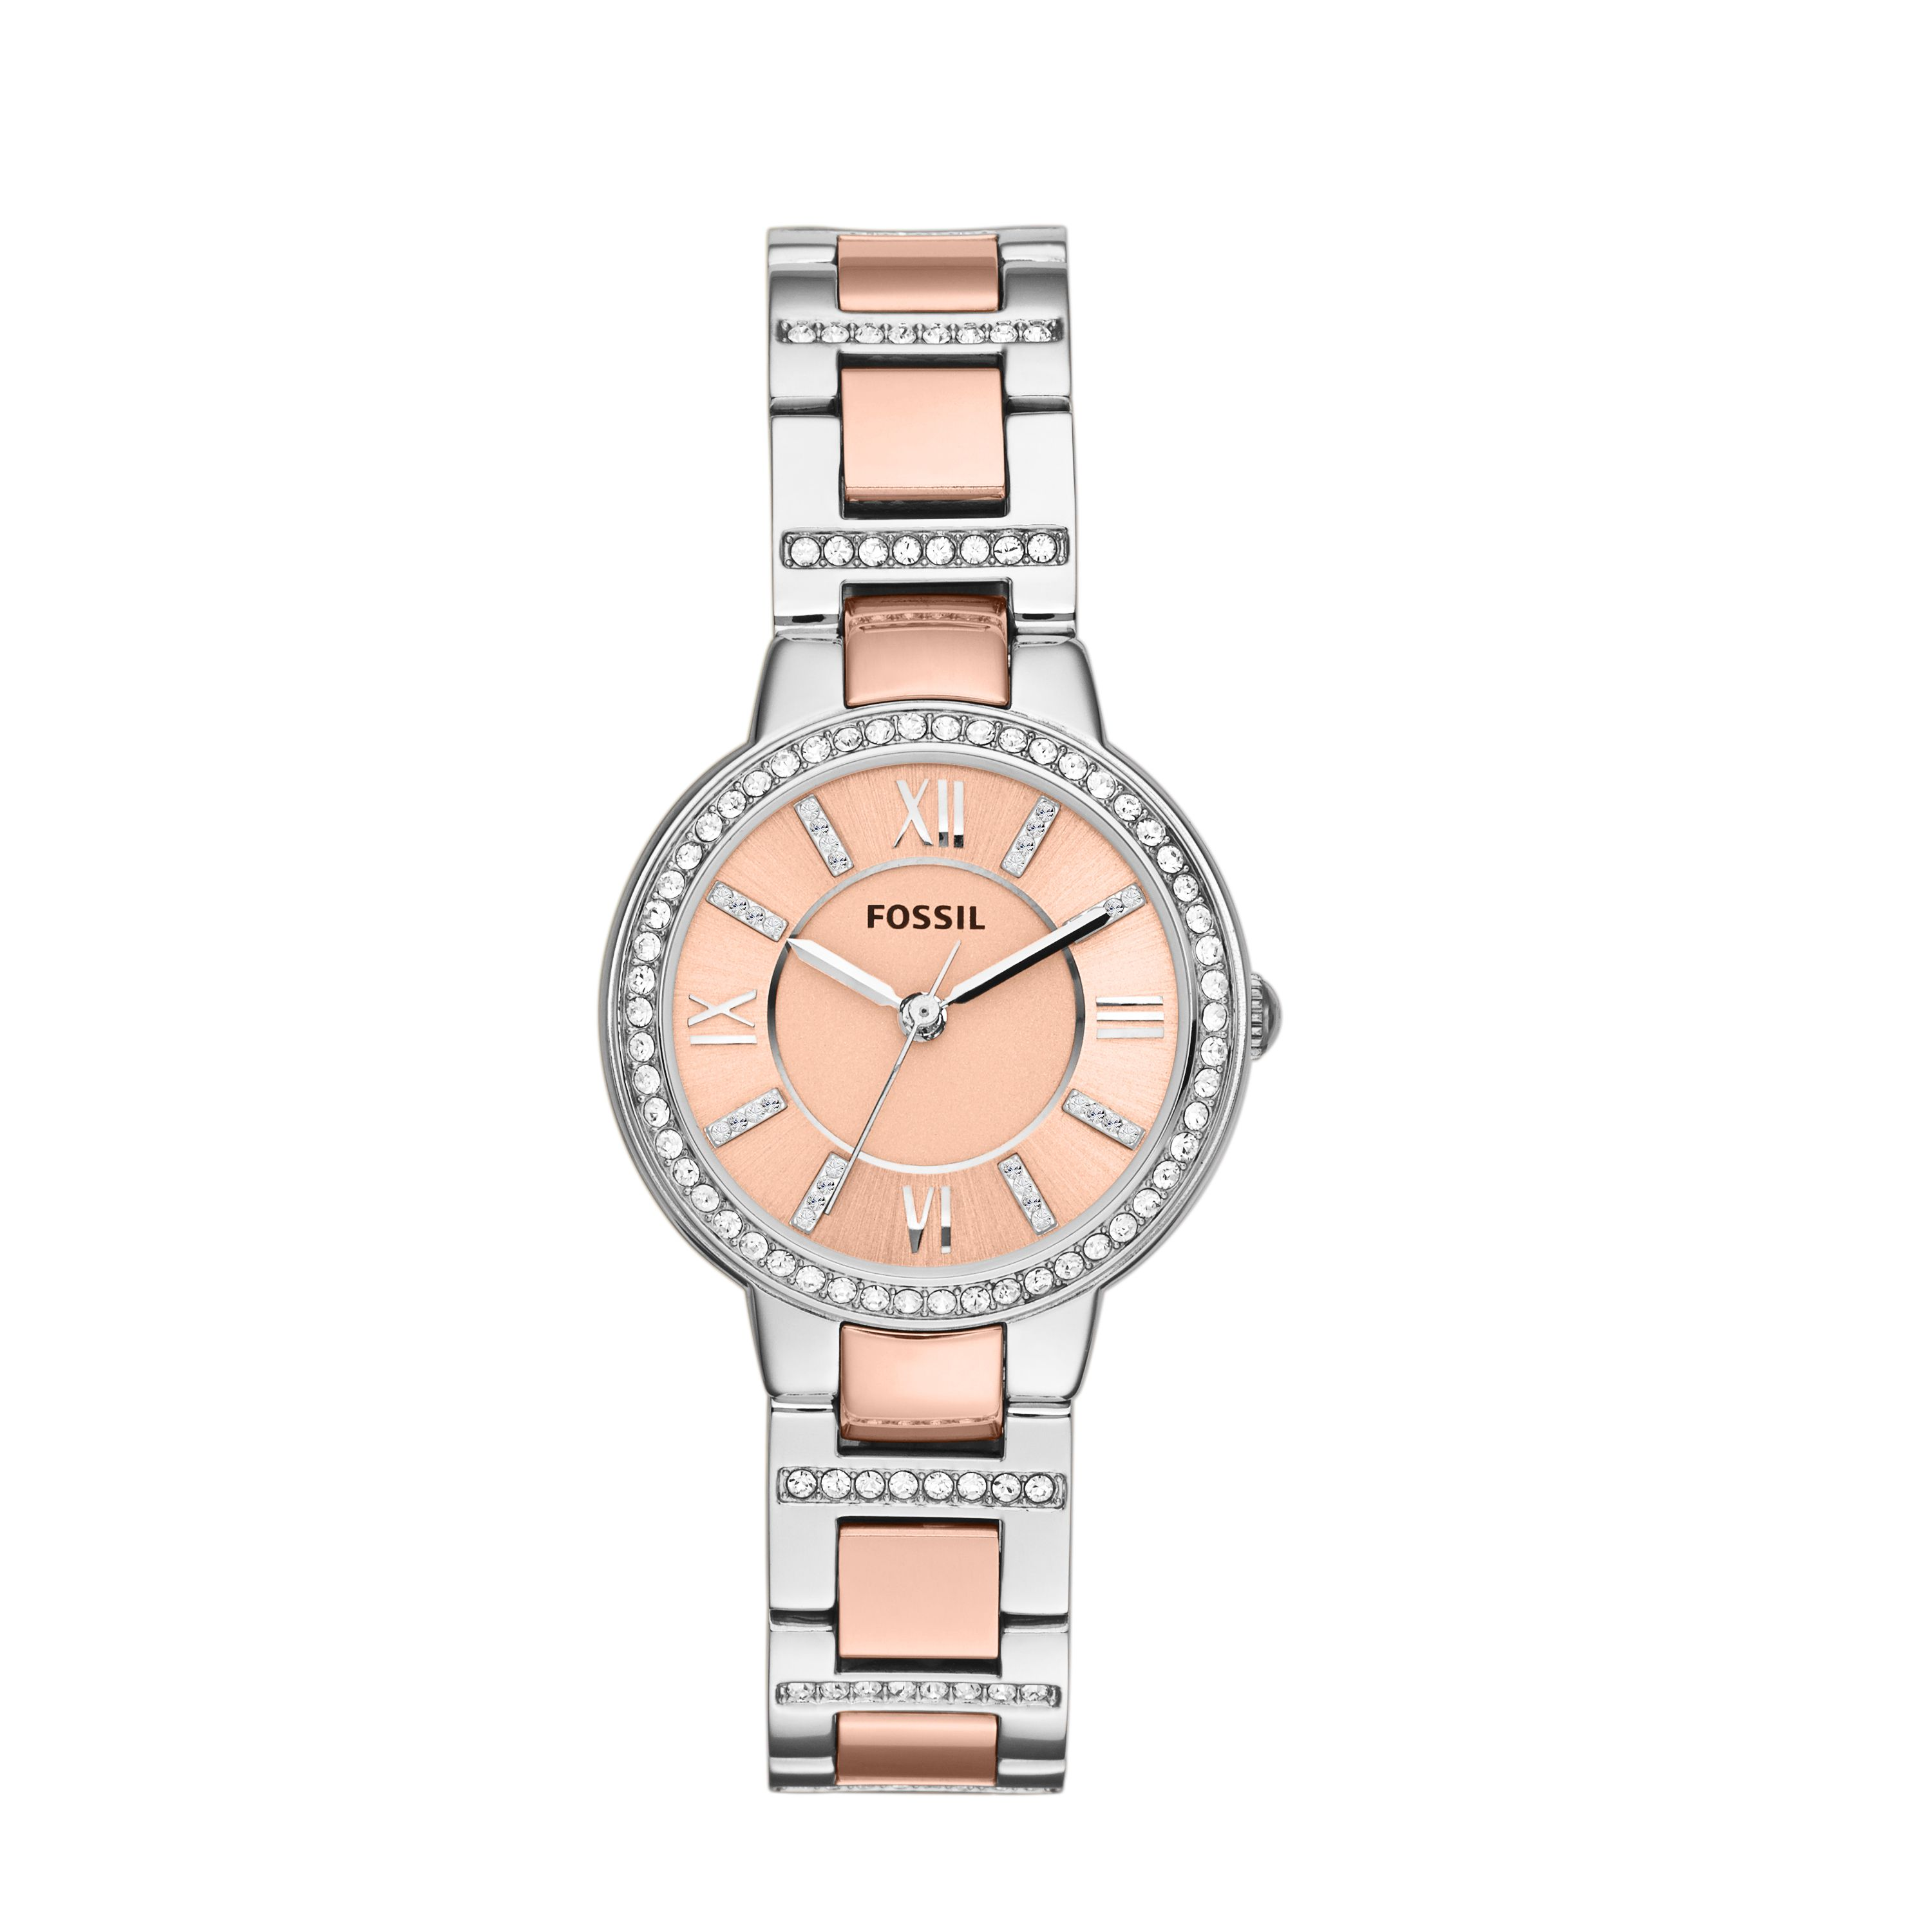 Es3405 virginia ladies rose gold bracelet watch